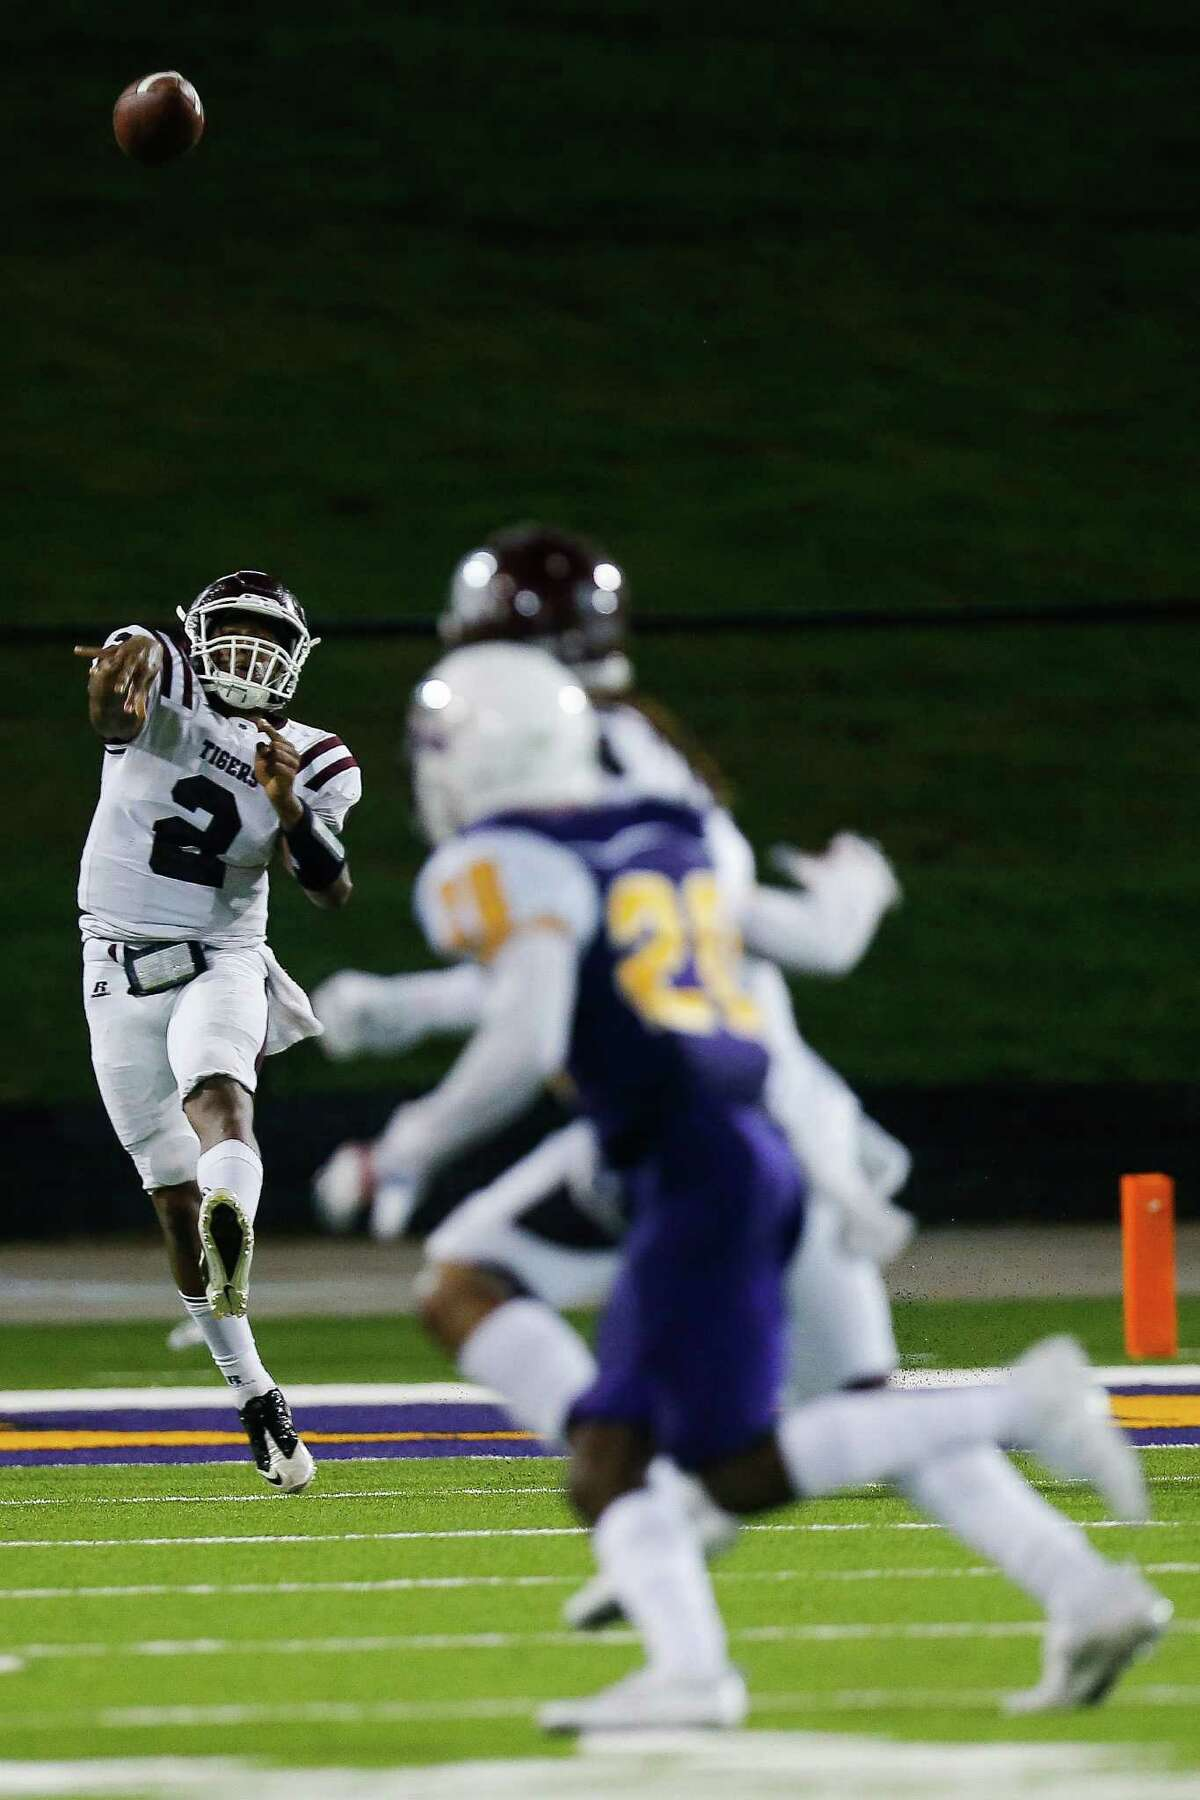 Texas Southern Tigers quarterback Aversion Hurts (2) makes a pas as the Prairie View Am Panthers take on the Texas Southern Tigers at Panther Stadium at Blackshear Field Sunday, September 4, 2016 in Prairie View.